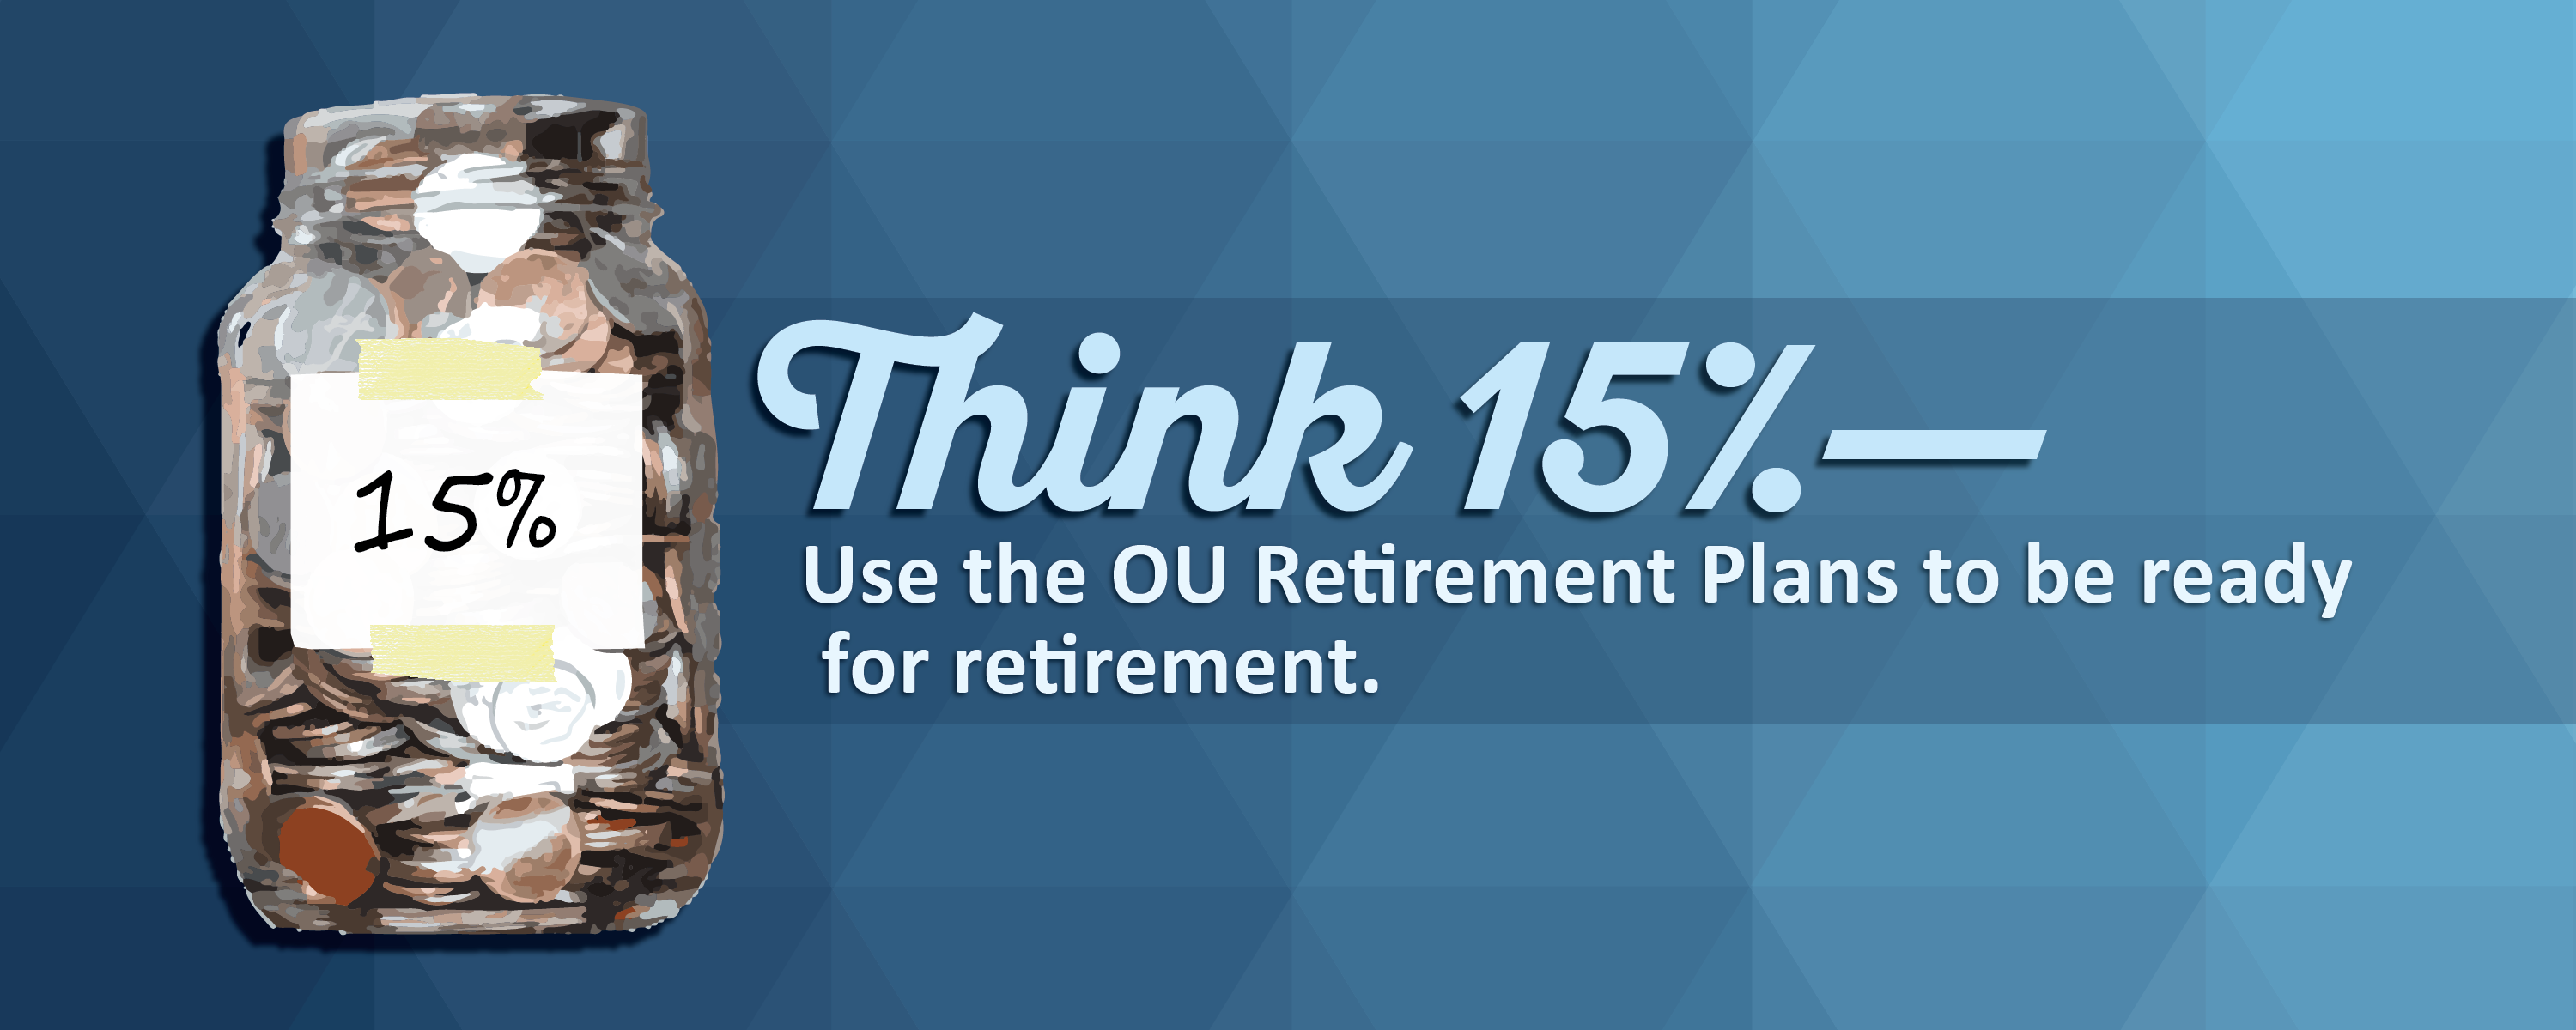 Think 15% with OU Retirement Plans